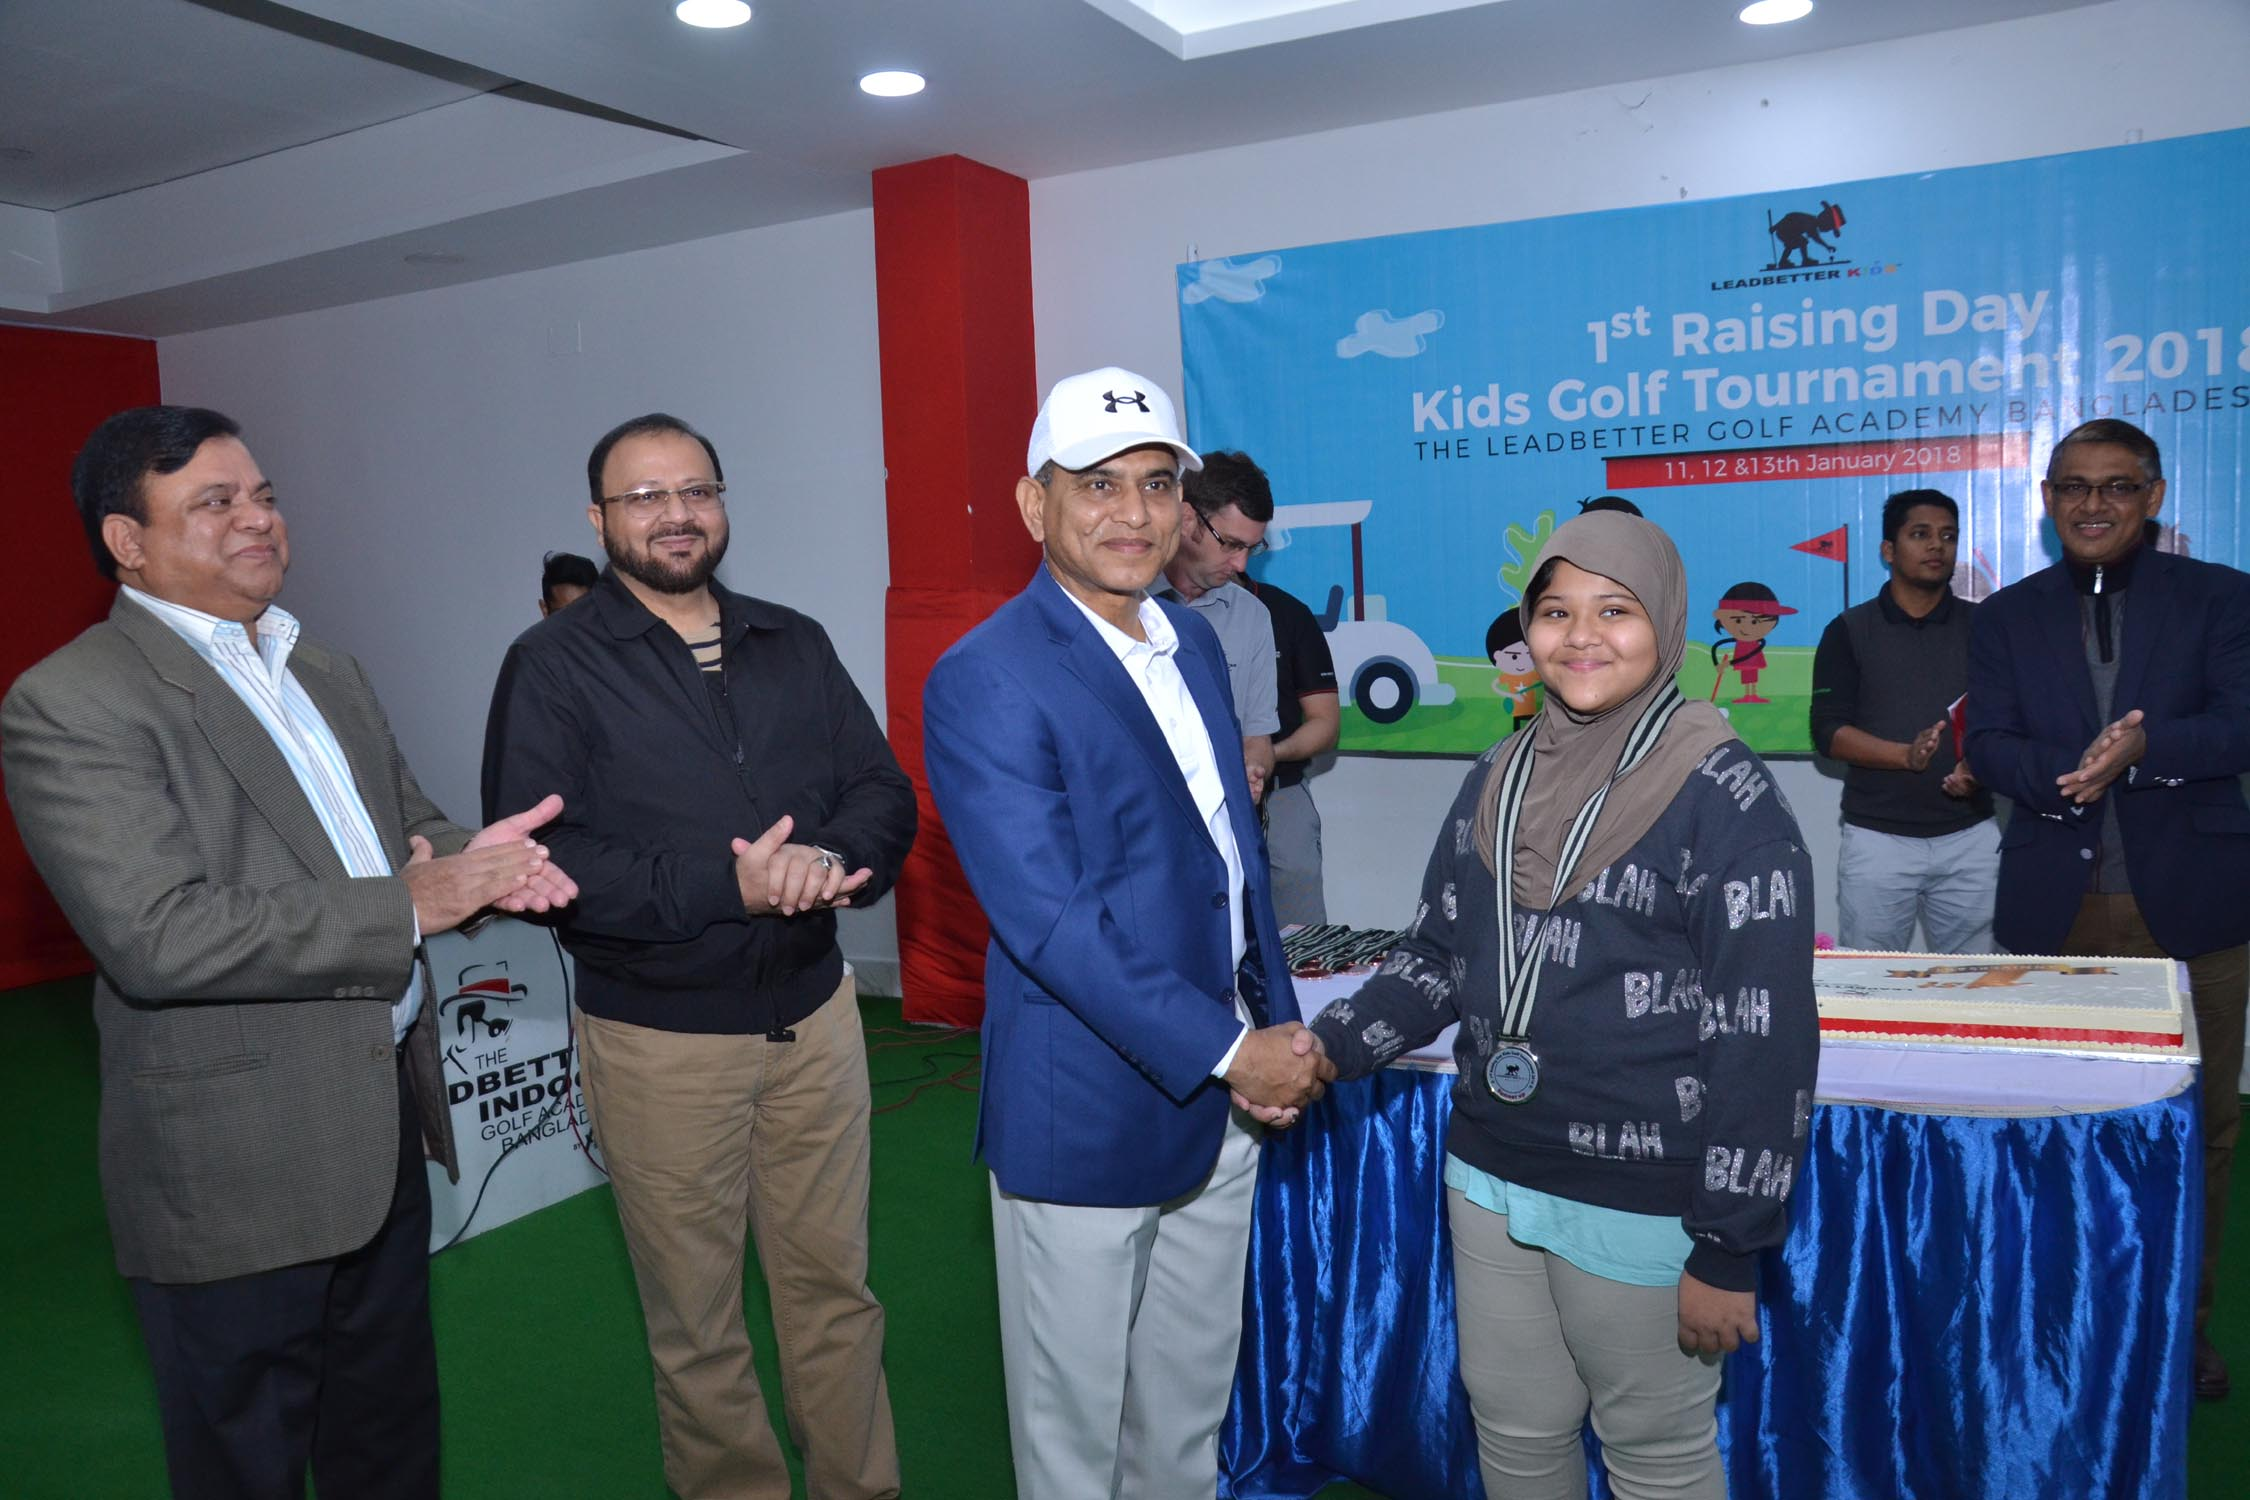 Prize giving ceremony of 3-day long 'Raising Day Kids Golf Tournament 2018' held at the Leadbetter Golf Academy Bangladesh on Saturday (January 13). The Leadbetter Golf Academy arranged the tournament from January 11 to 13. Over 150 students took part in the tournament.